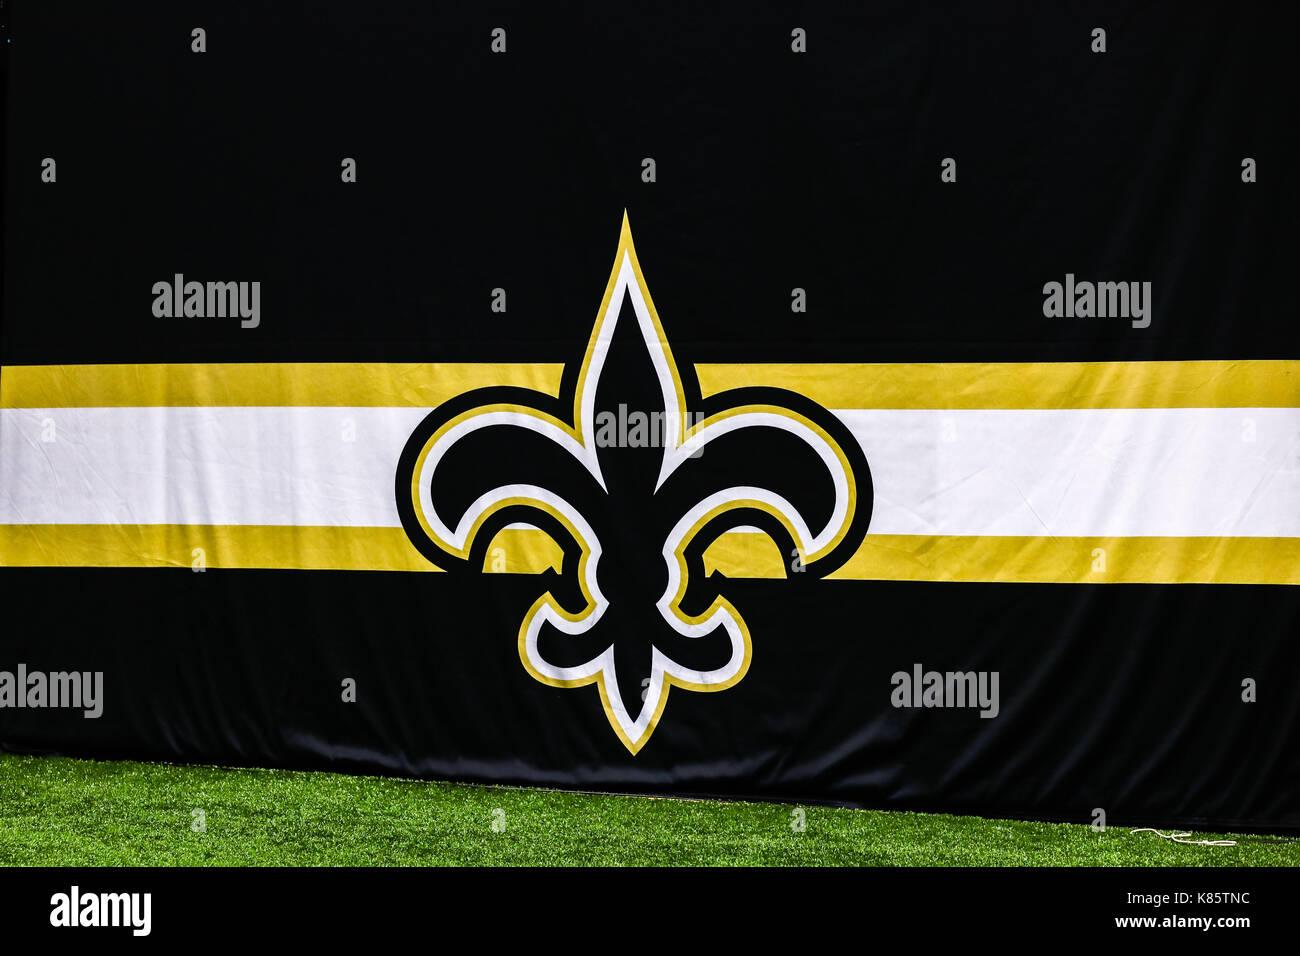 September 17, 2017 - New Orleans Saints logo during the game between the New England Patriots and the New Orleans Saints at the Mercedes-Benz Superdome in New Orleans, LA. New England Patriots won 36-20. Stephen Lew/CSM - Stock Image